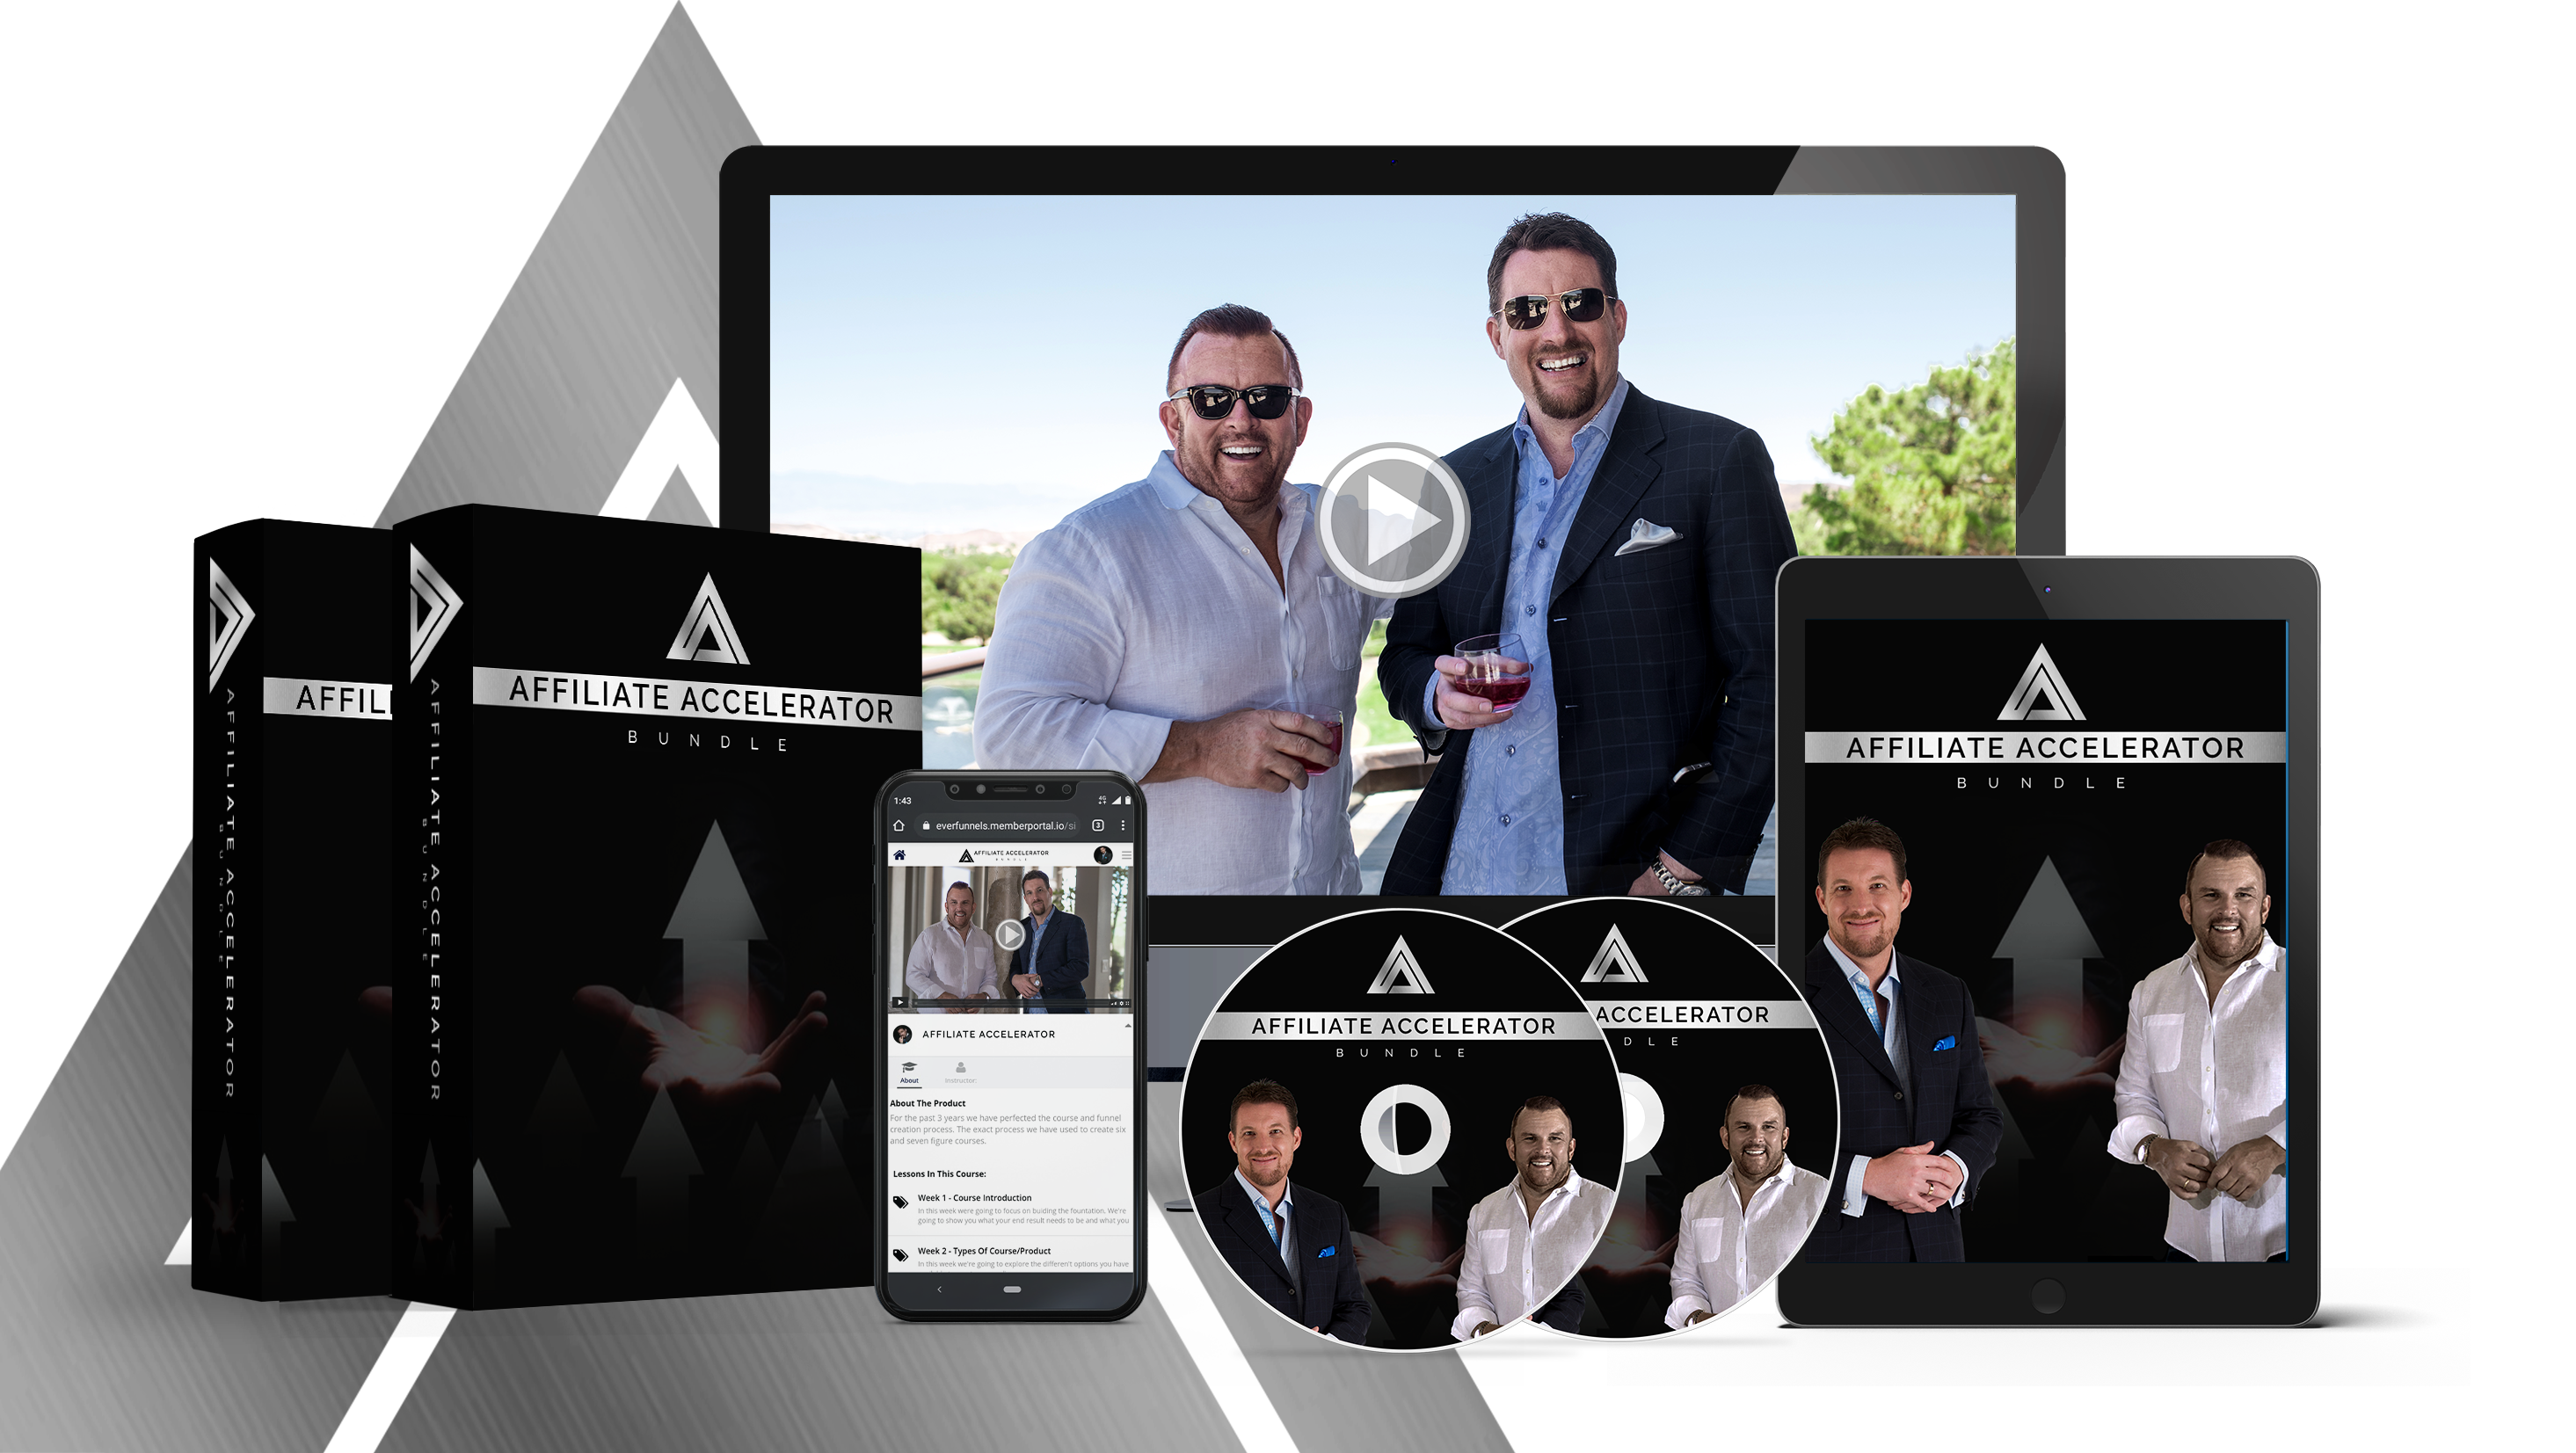 By following the Power Accelerator Program, you will learn all you need to know to become a Power Affiliate